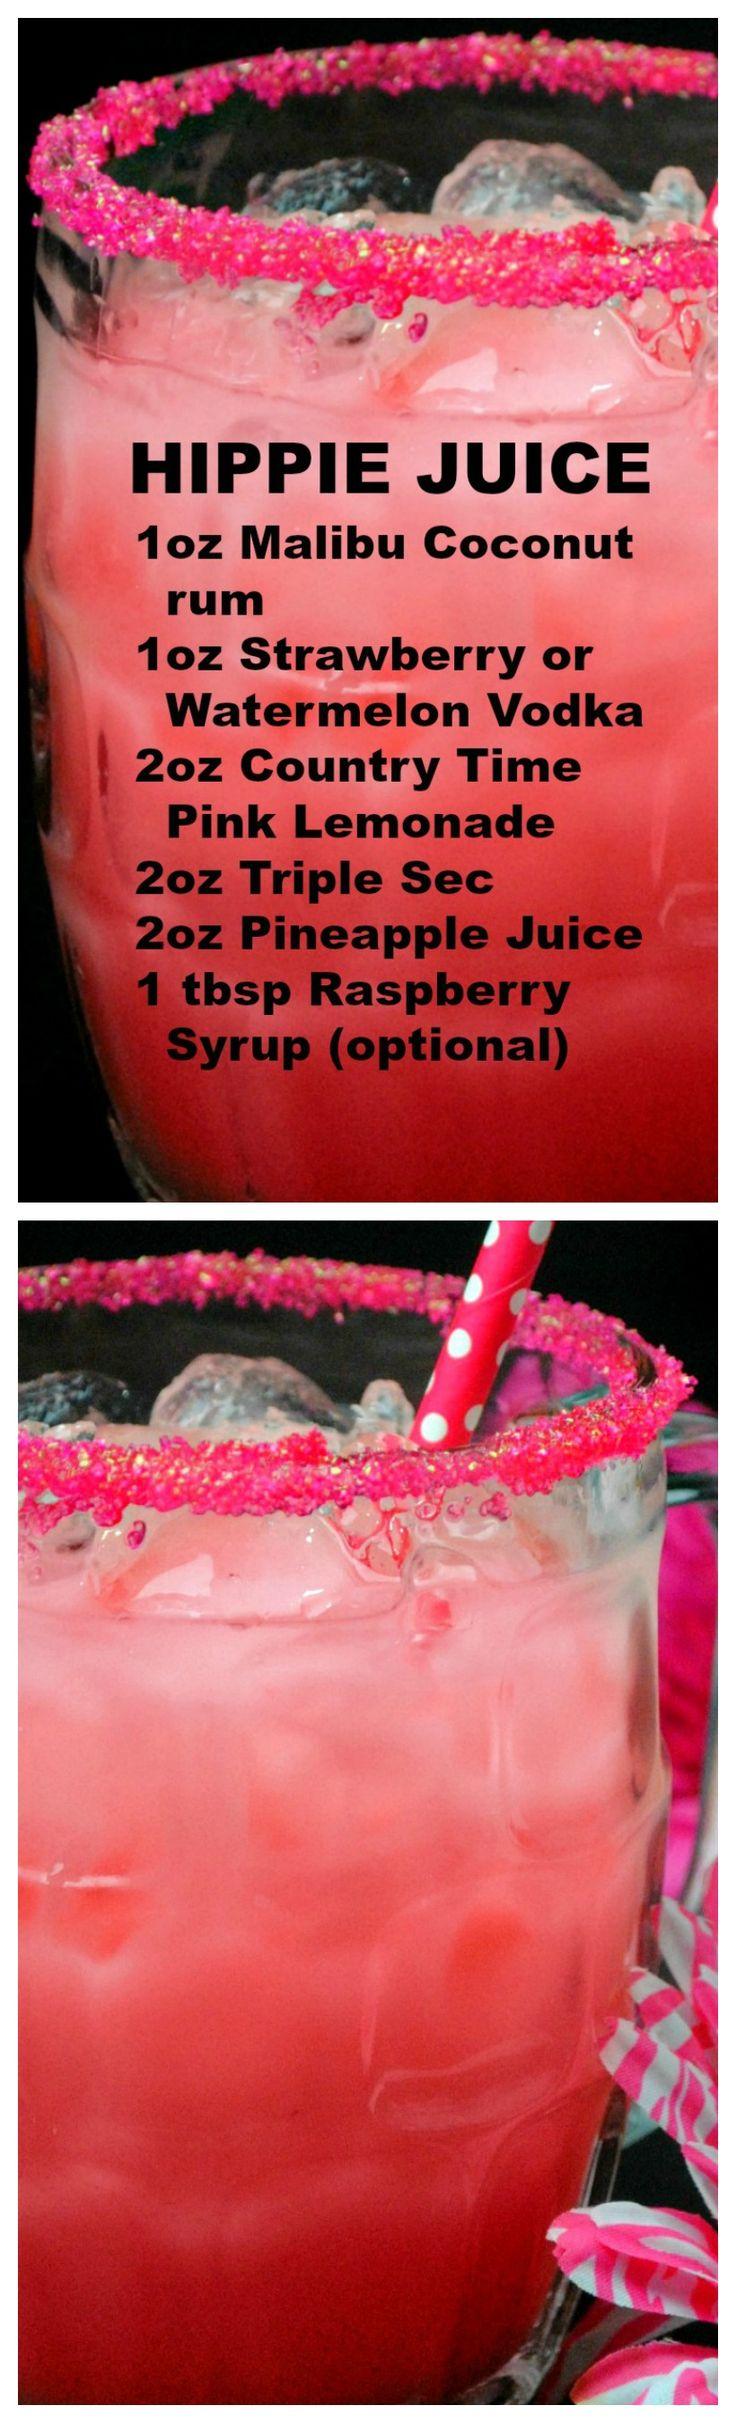 Hippie Juice ~ One of those beautiful drinks, that taste incredible but pack a punch!